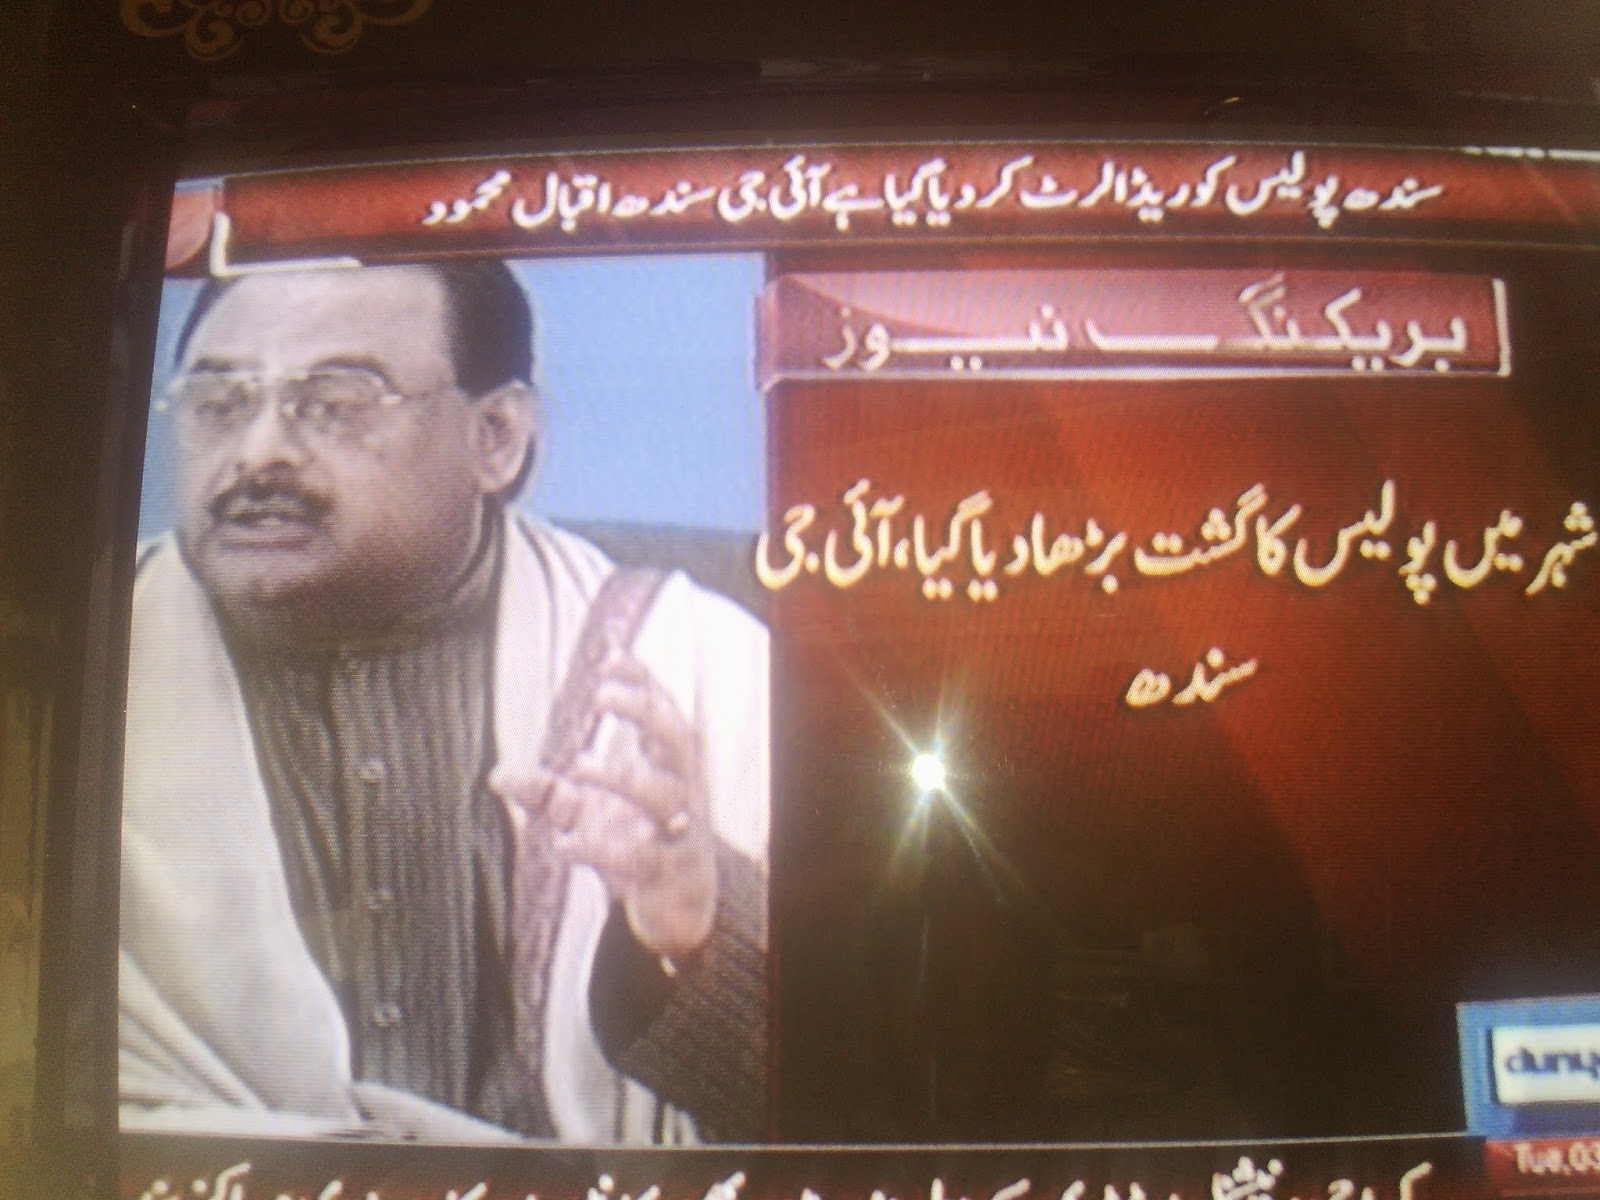 Altaf hussain arrested in London